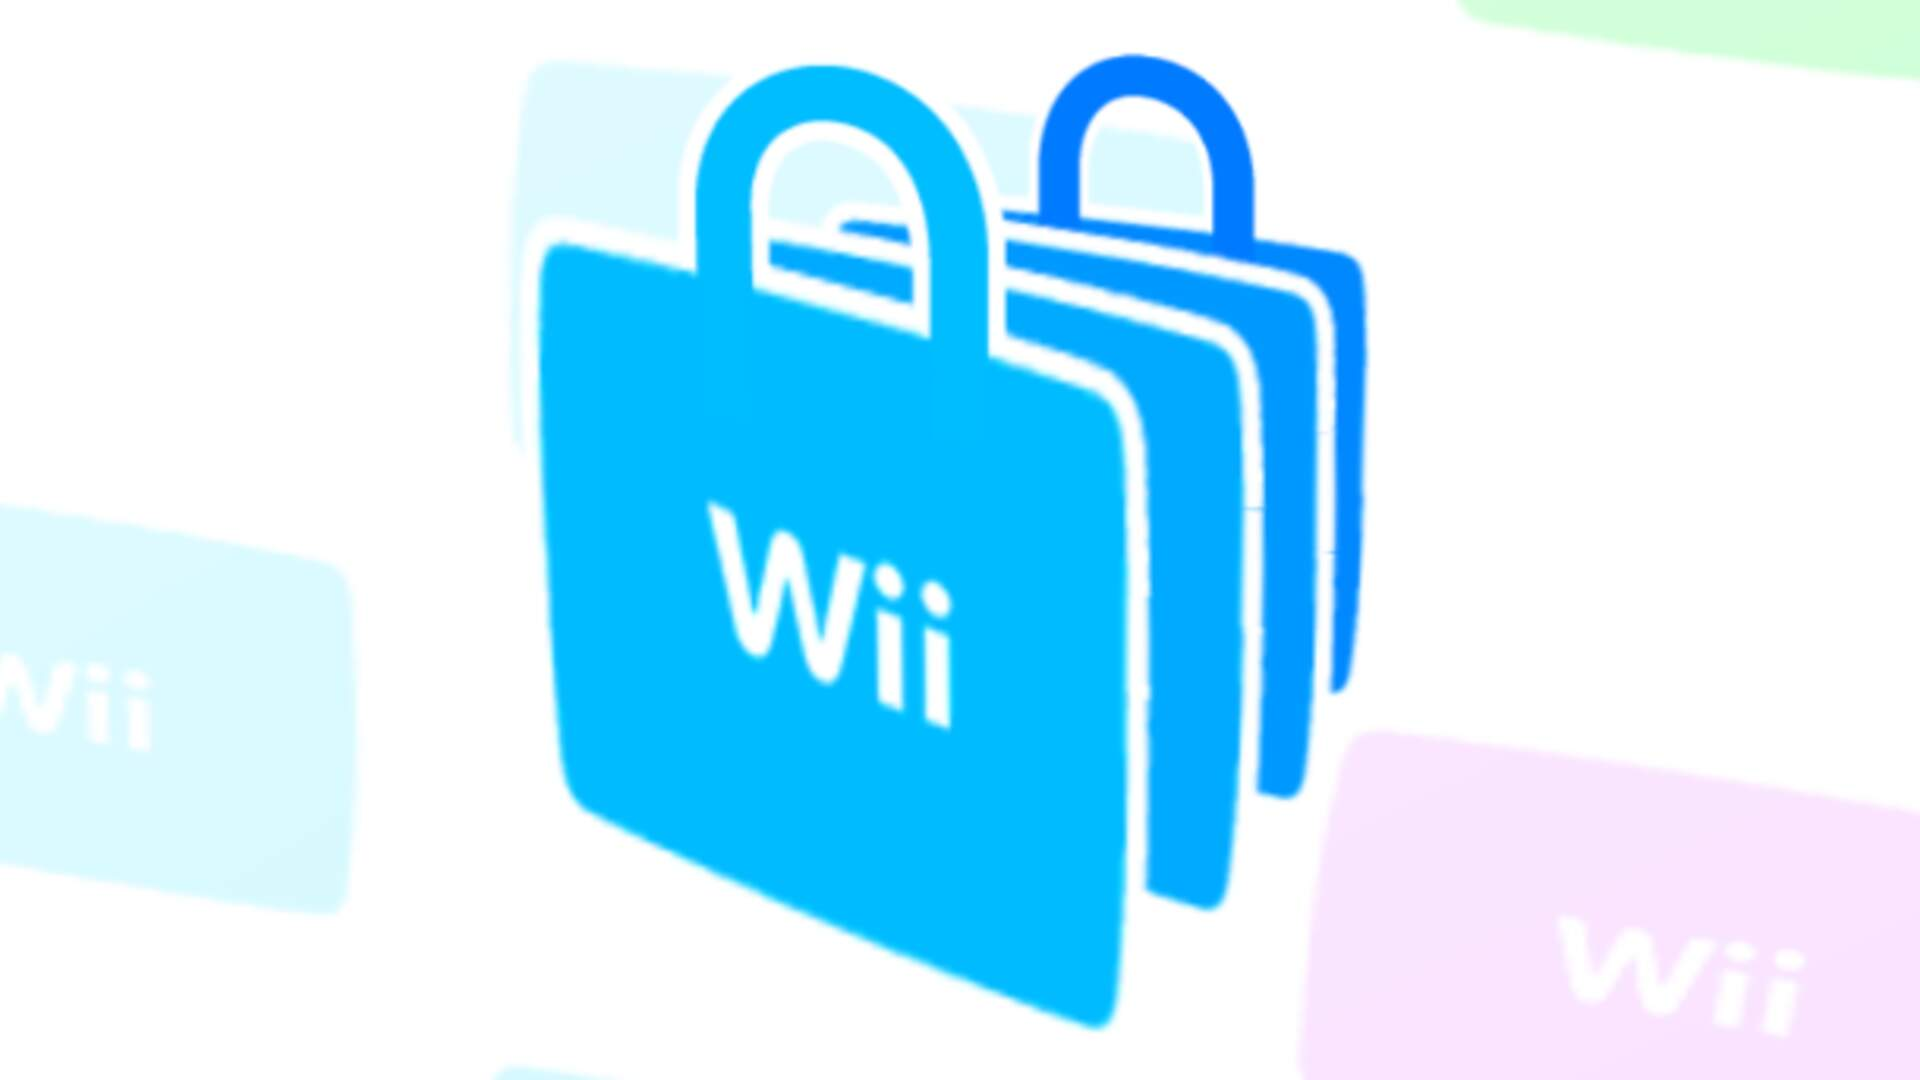 Nintendo Shutting Down The Wii Shop Channel in 2019